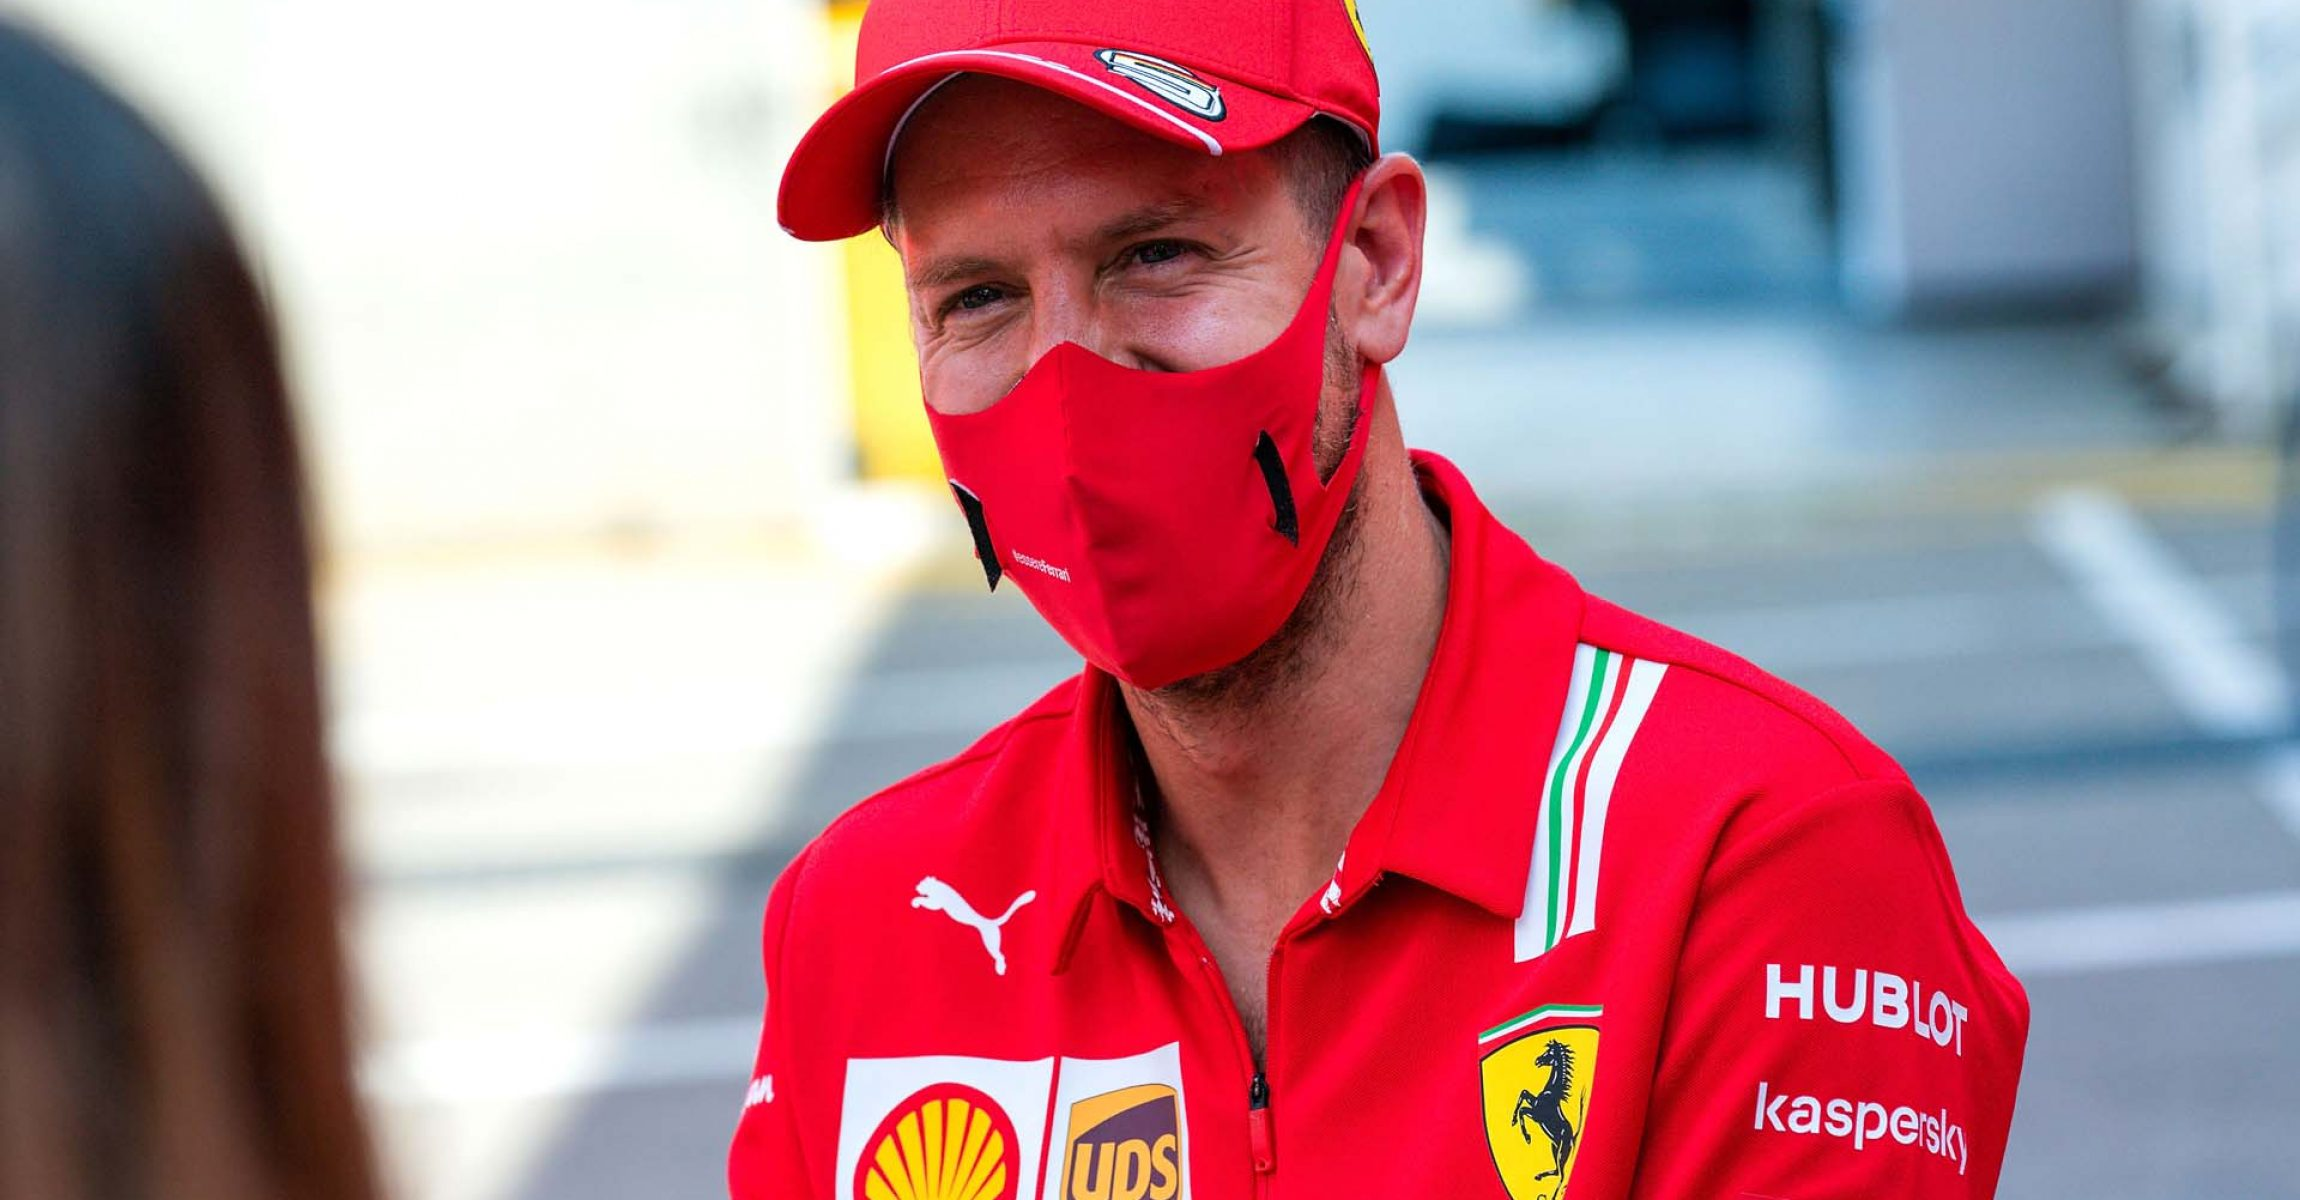 GP SPAGNA F1/2020 -  GIOVEDÌ 13/08/2020  09/08/2020  credit: @Scuderia Ferrari Press Office Sebastian Vettel,